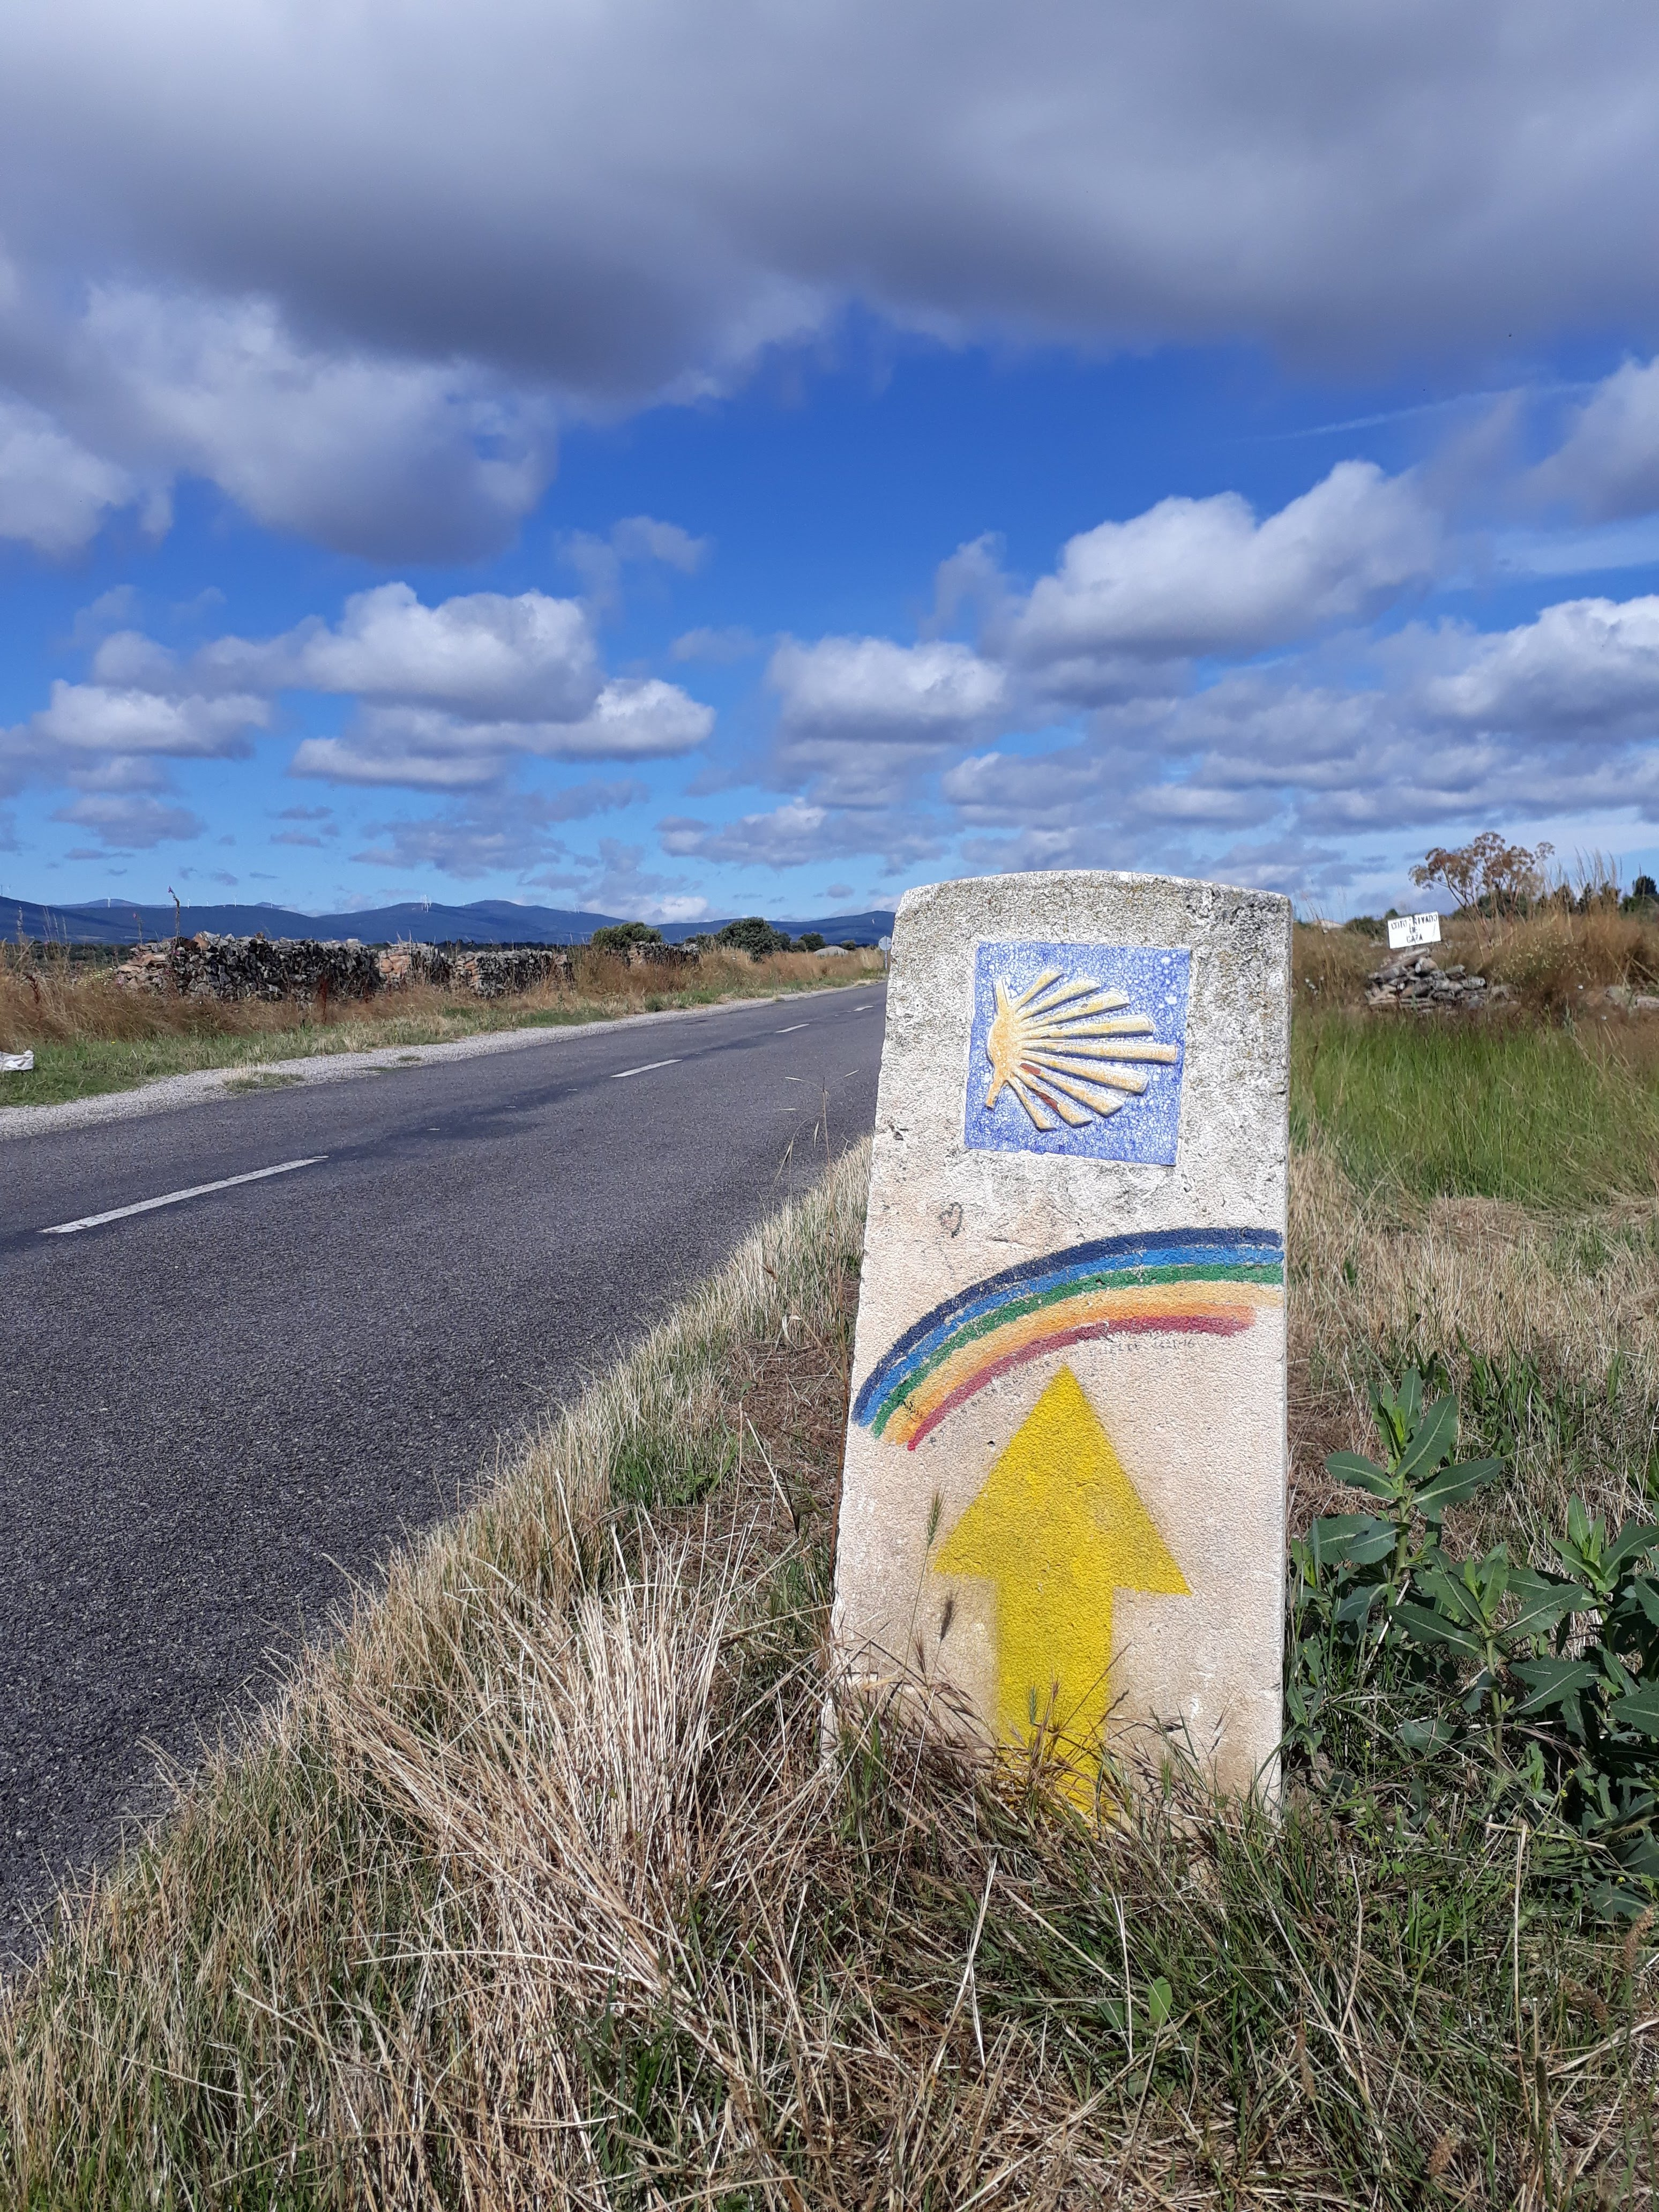 Day 6 Return from Logrono